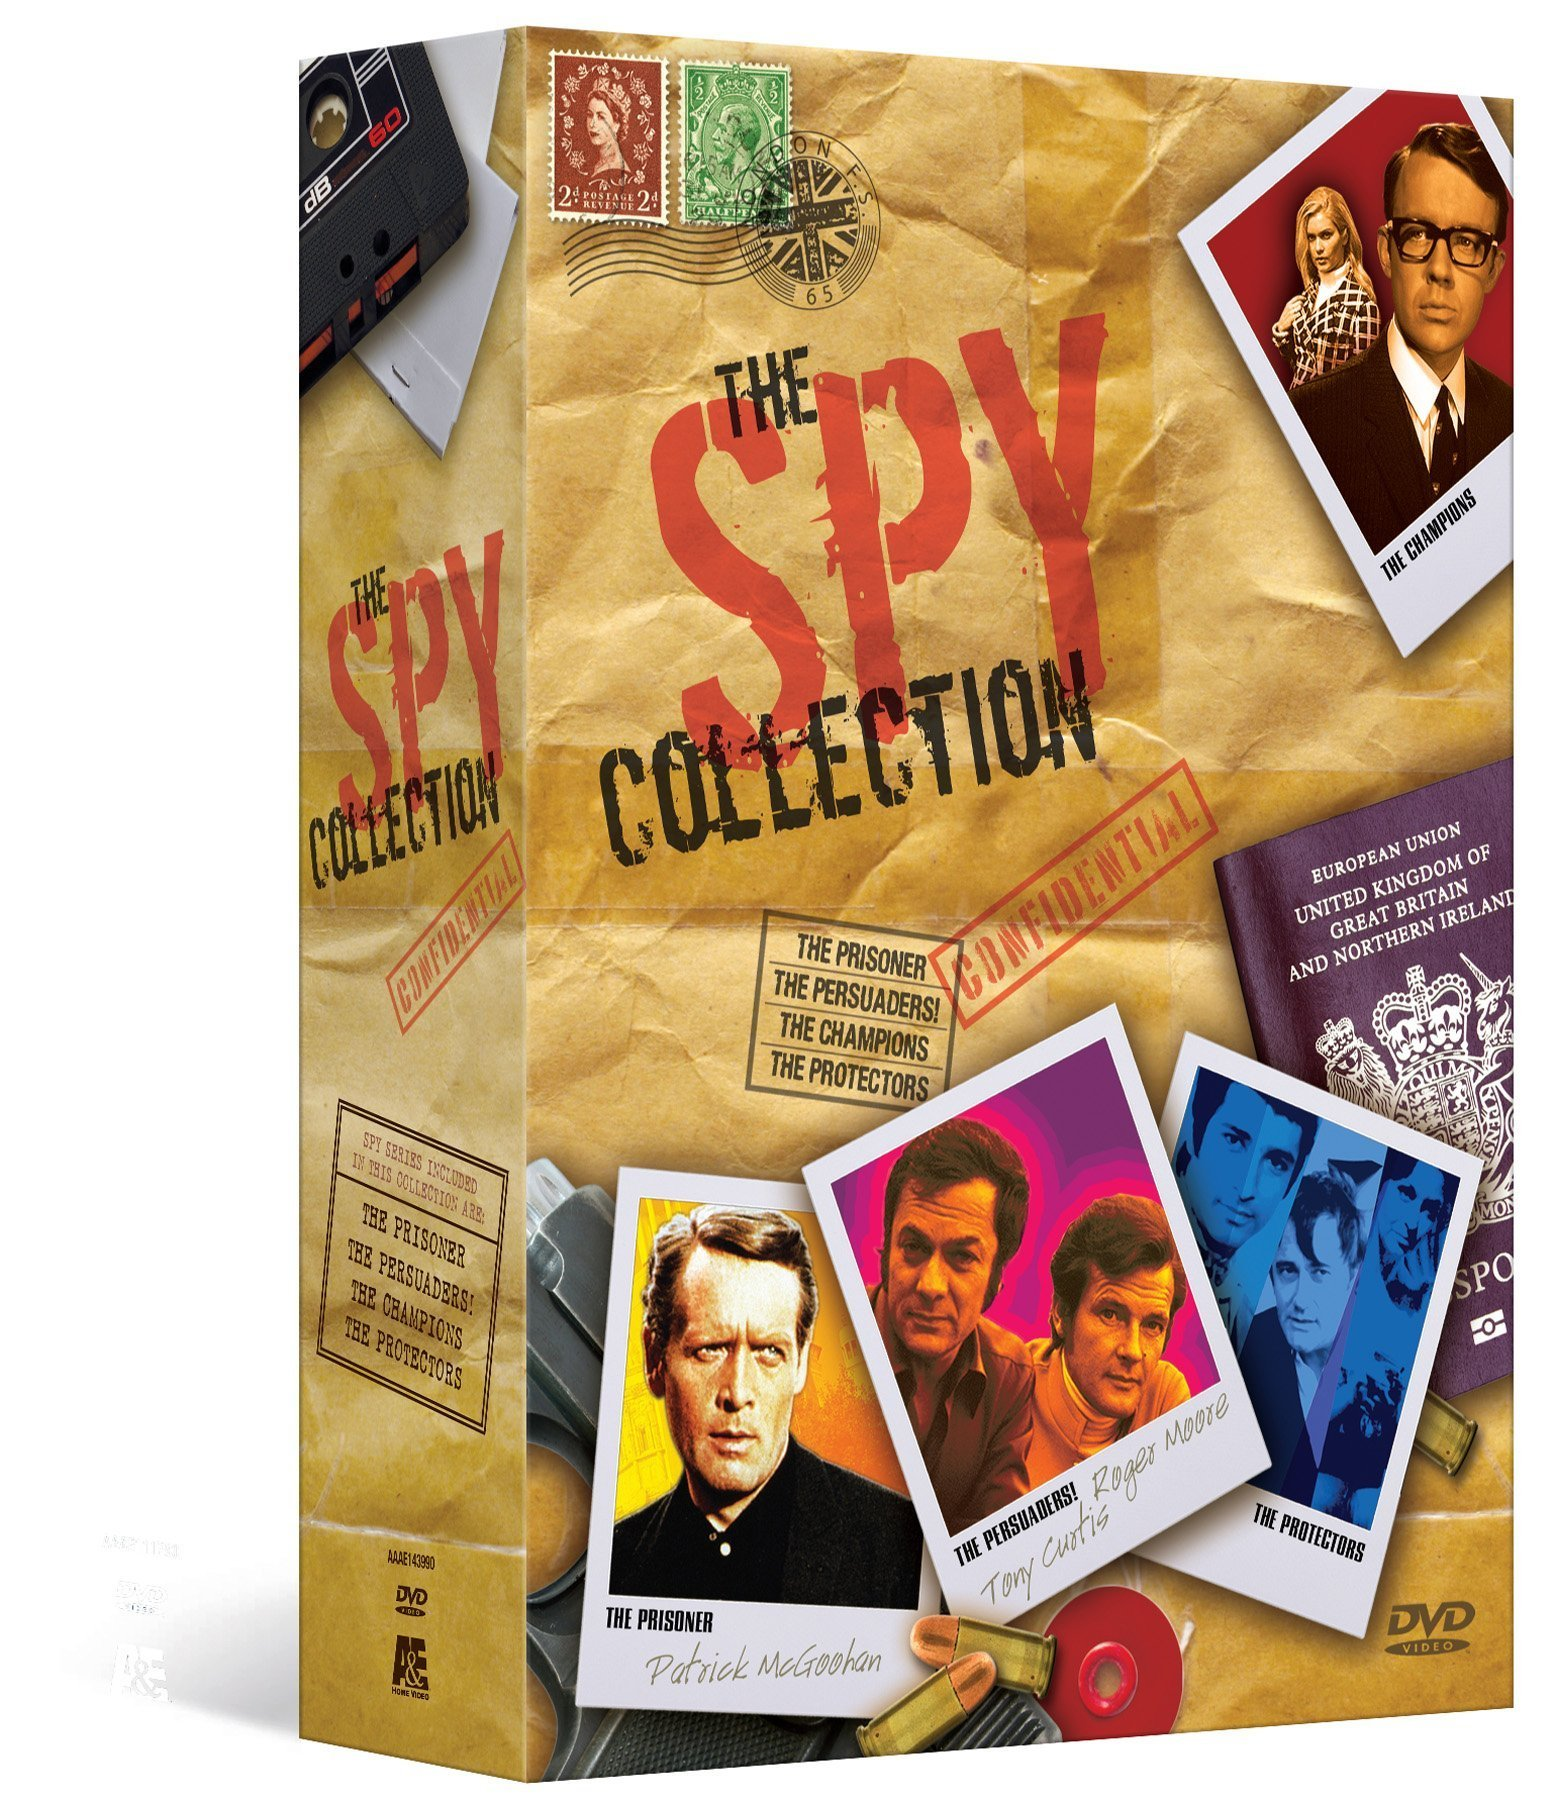 The Spy Collection Megaset (The Prisoner / The Persuaders / The Champions / The Protectors) by A&E